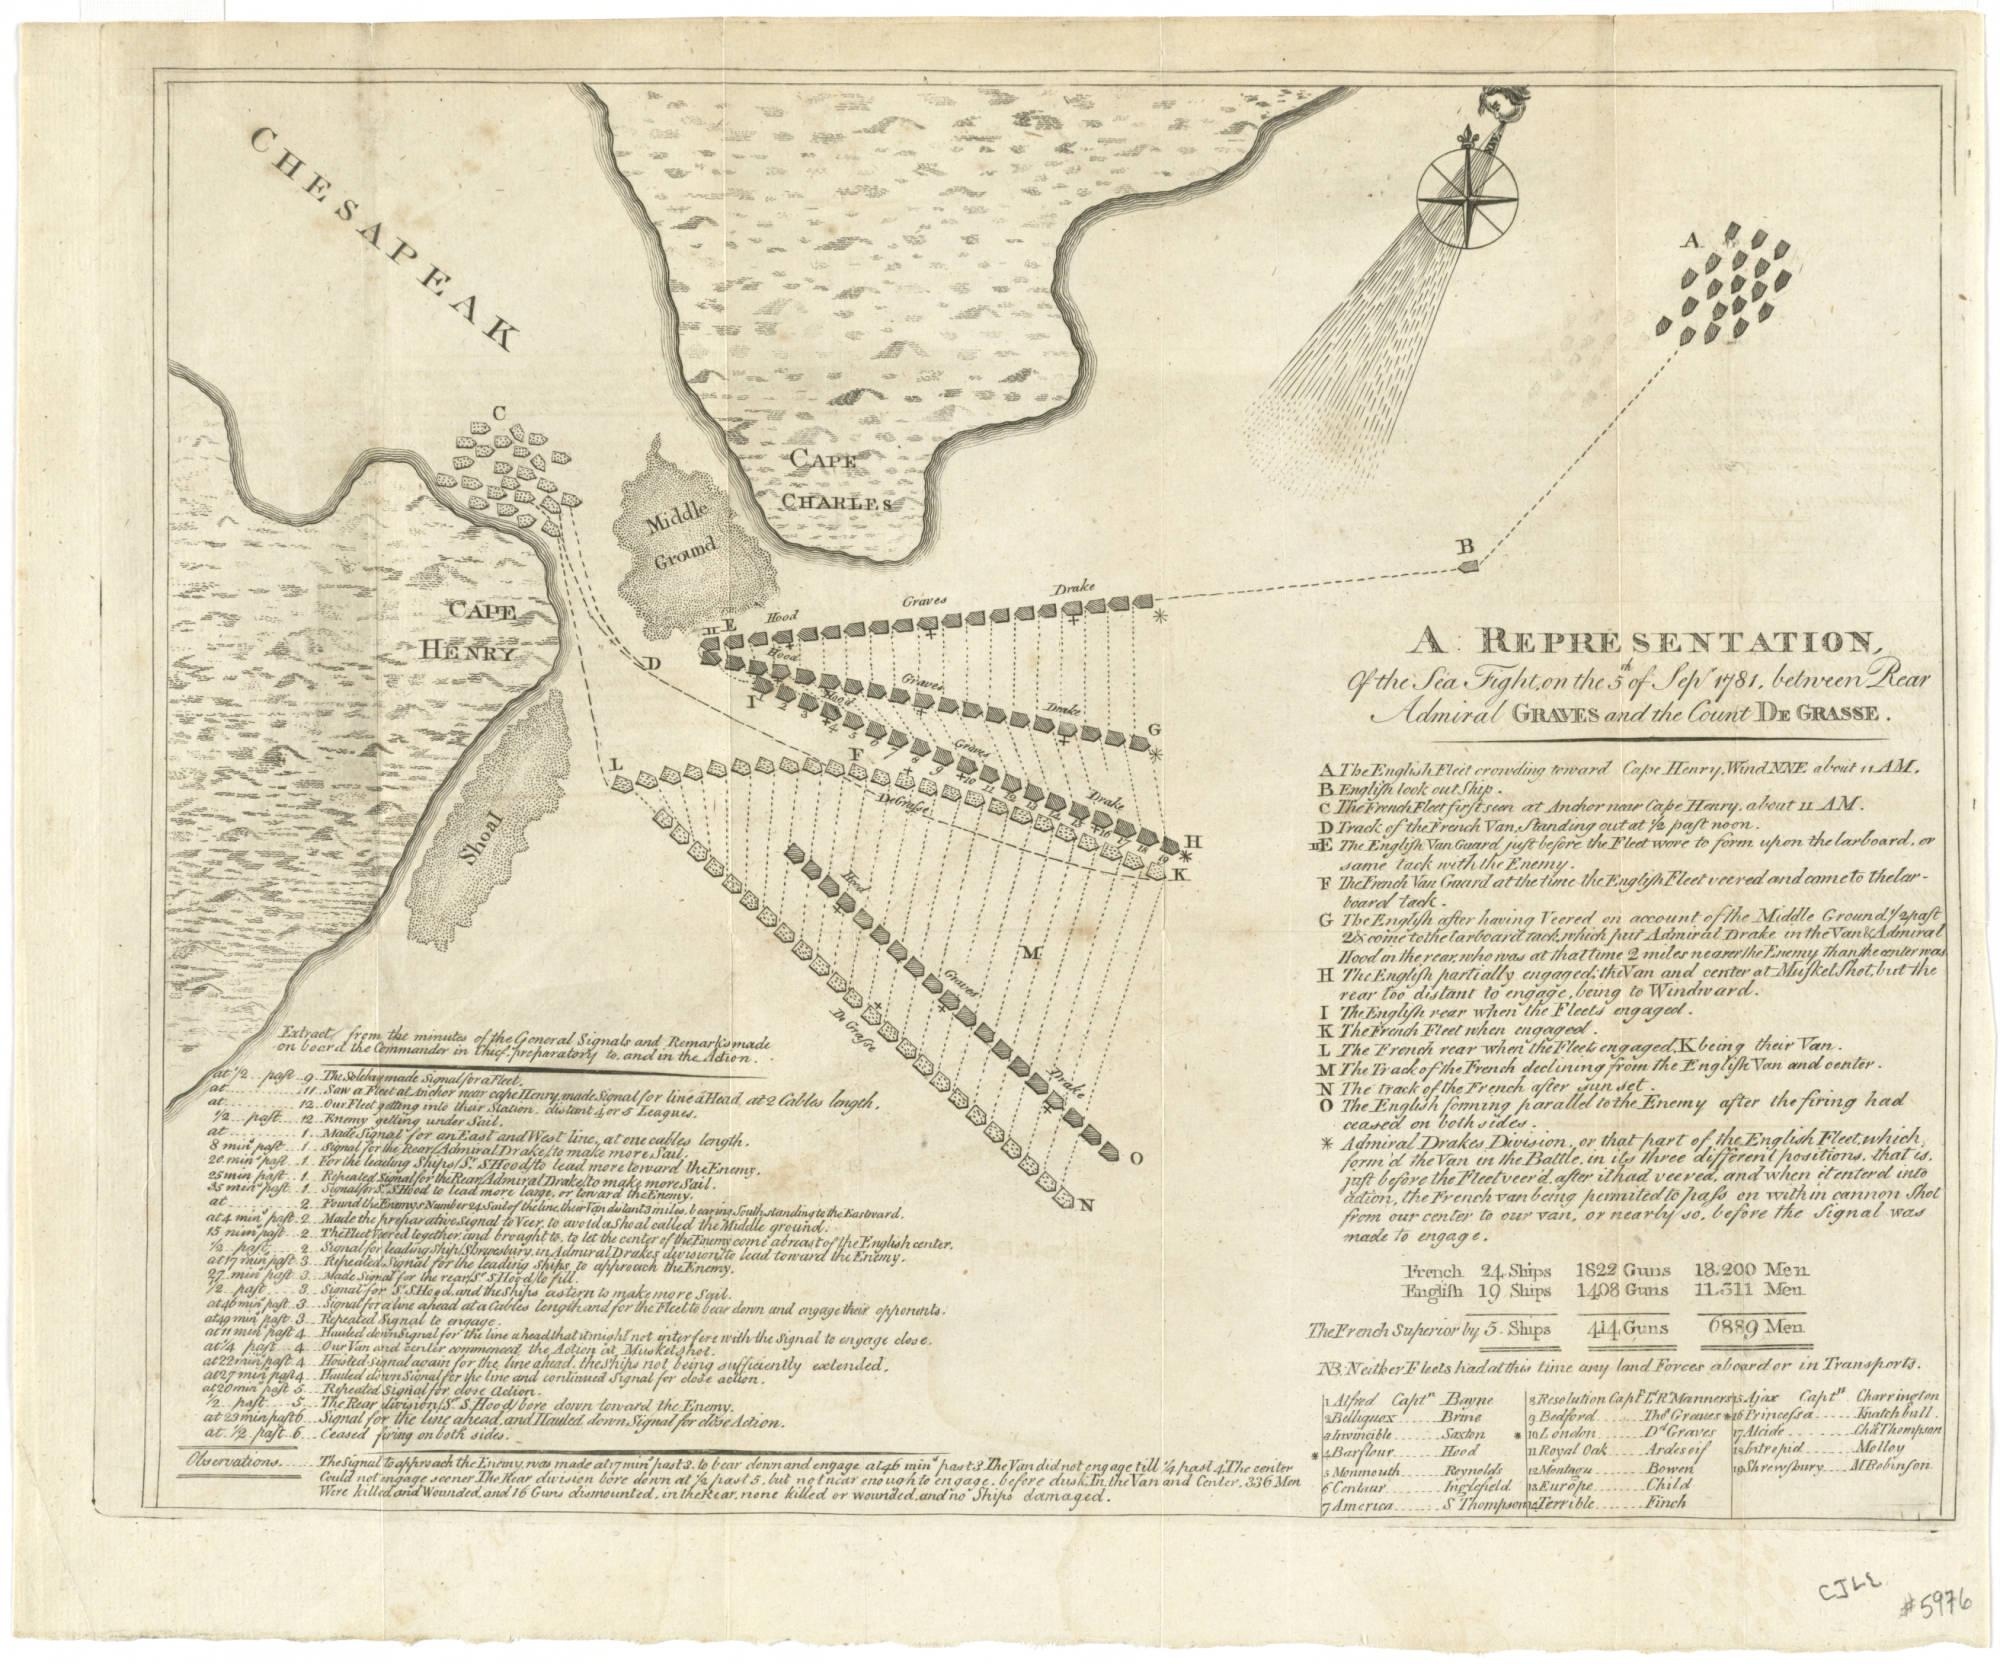 "Comte de Grasse, ""A Representation, of the sea fight, on the 5th of Sepr. 1781, between Rear Admiral Graves and the Count de Grasse."" Richard H. Brown Revolutionary War Map Collection, MVLA. Click the image to access the full image."